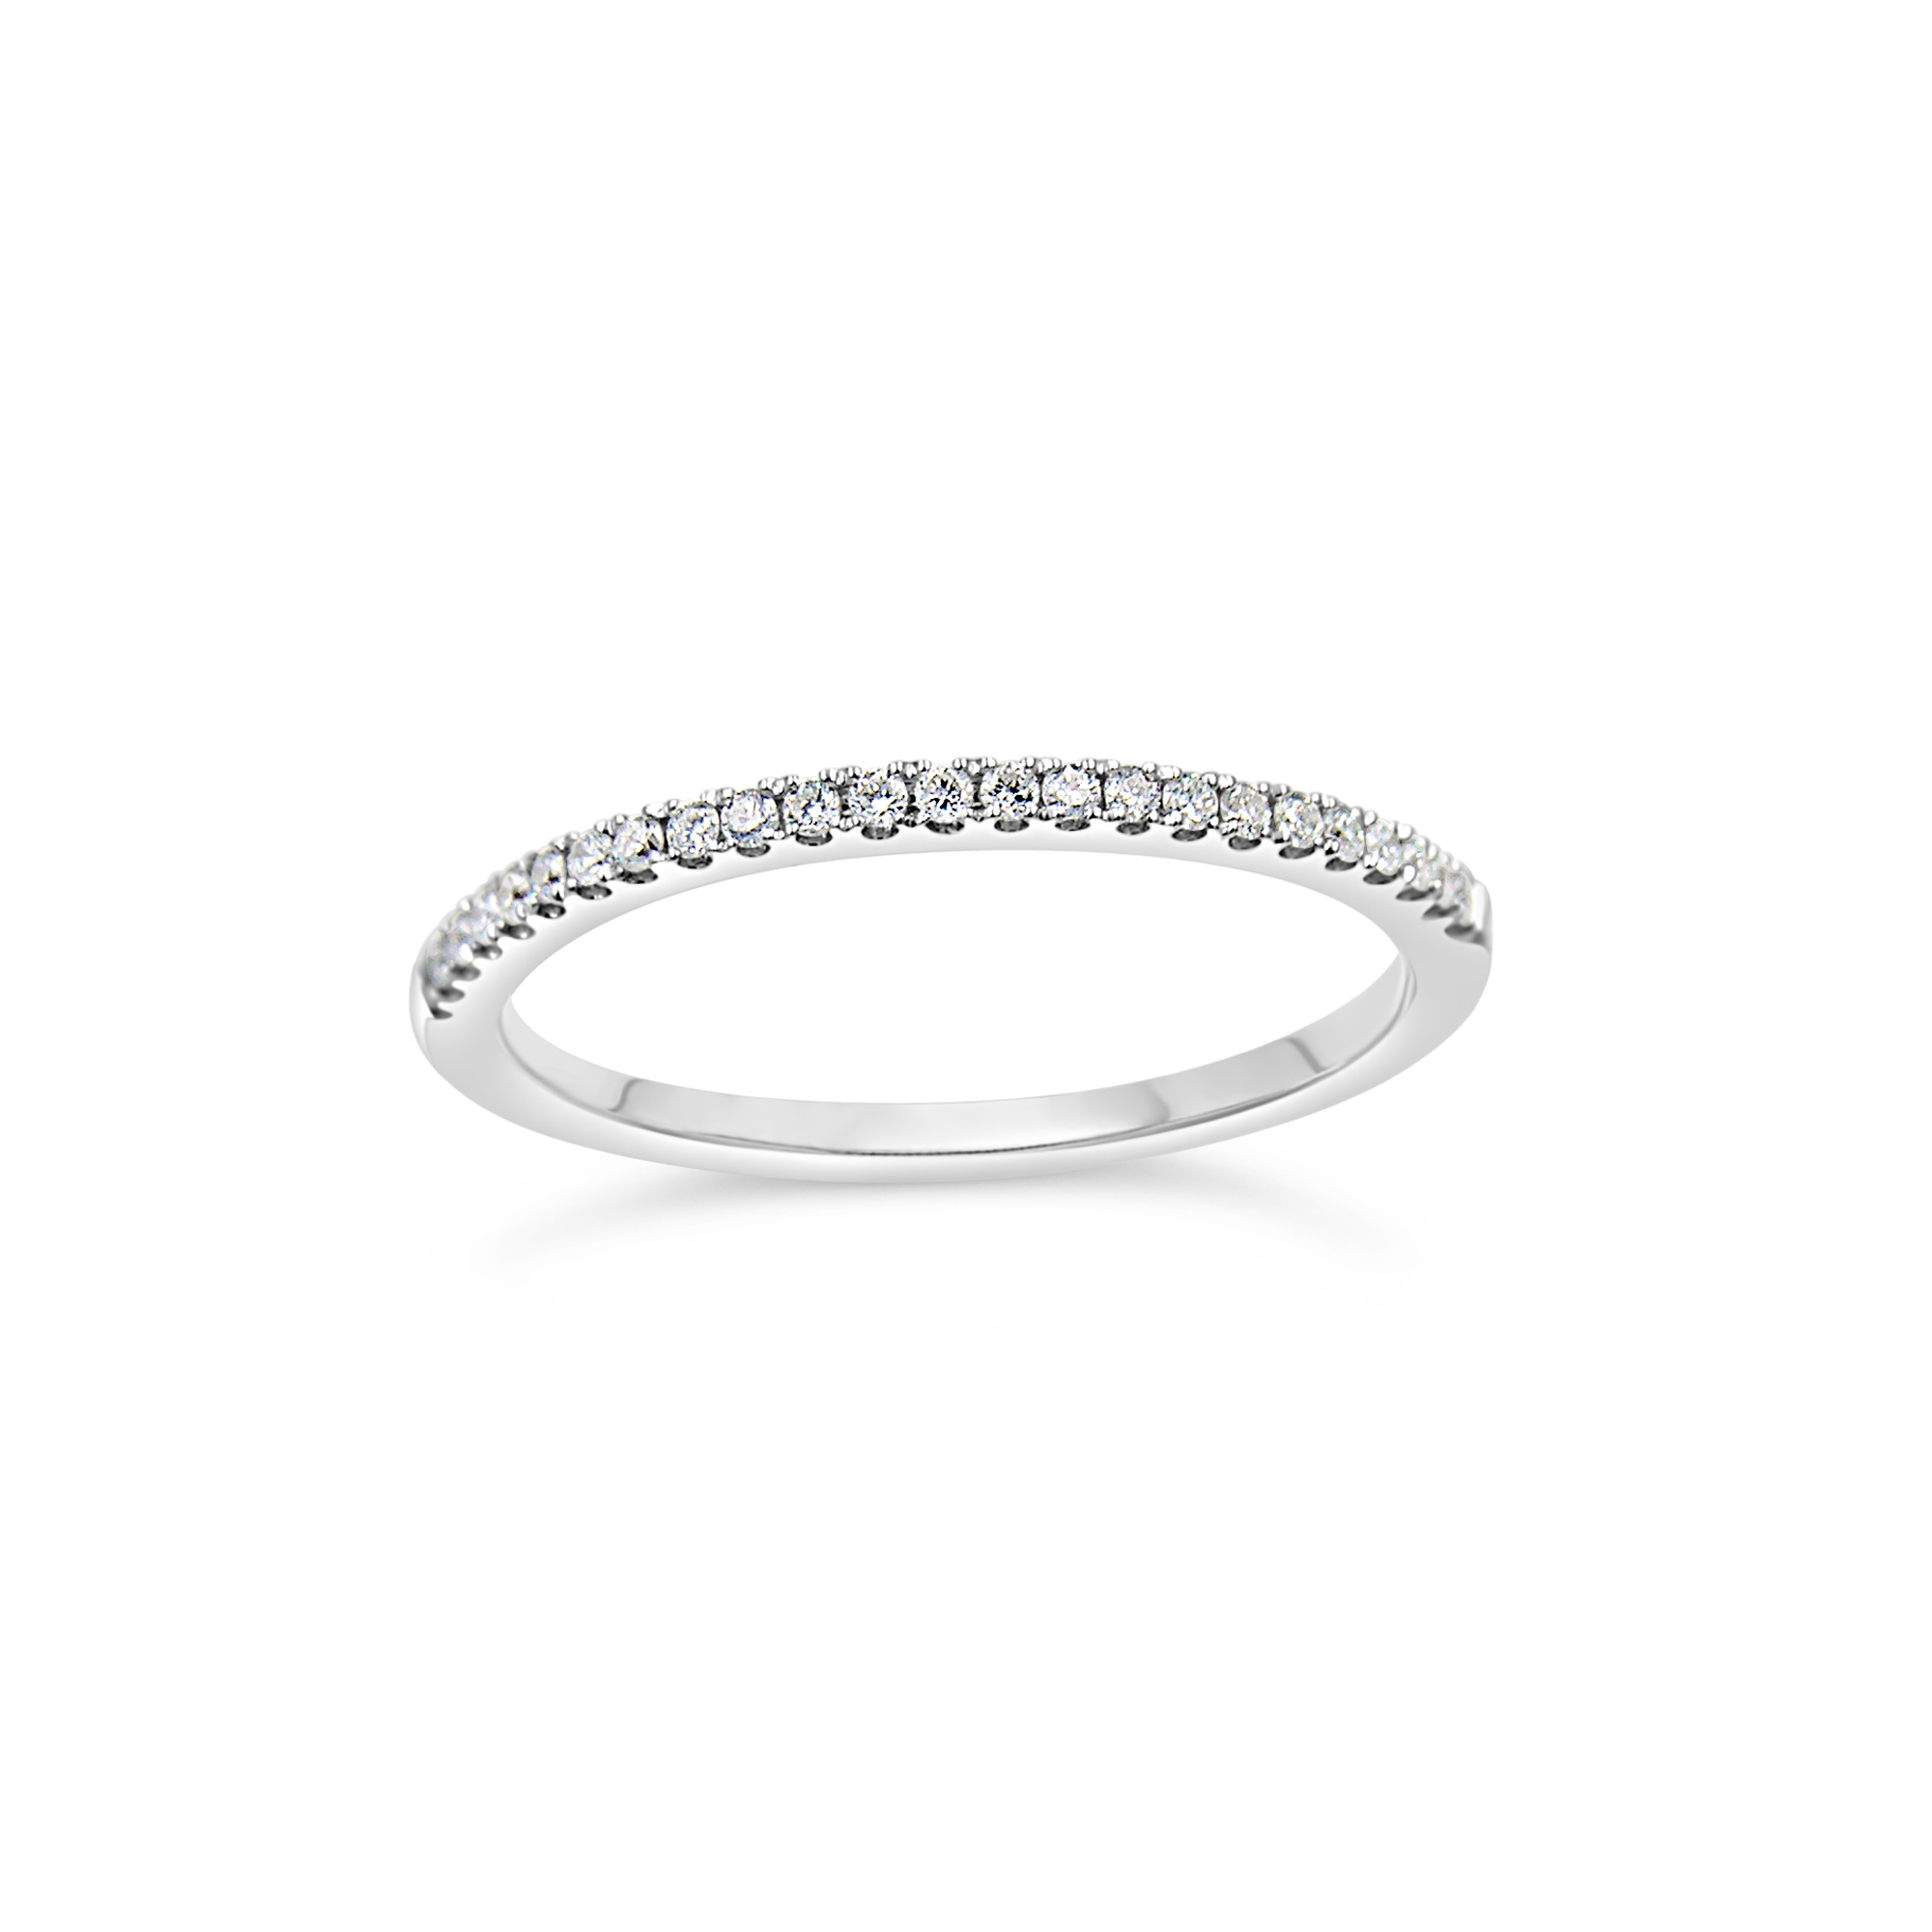 18k white gold ring with 0.13 ct diamonds